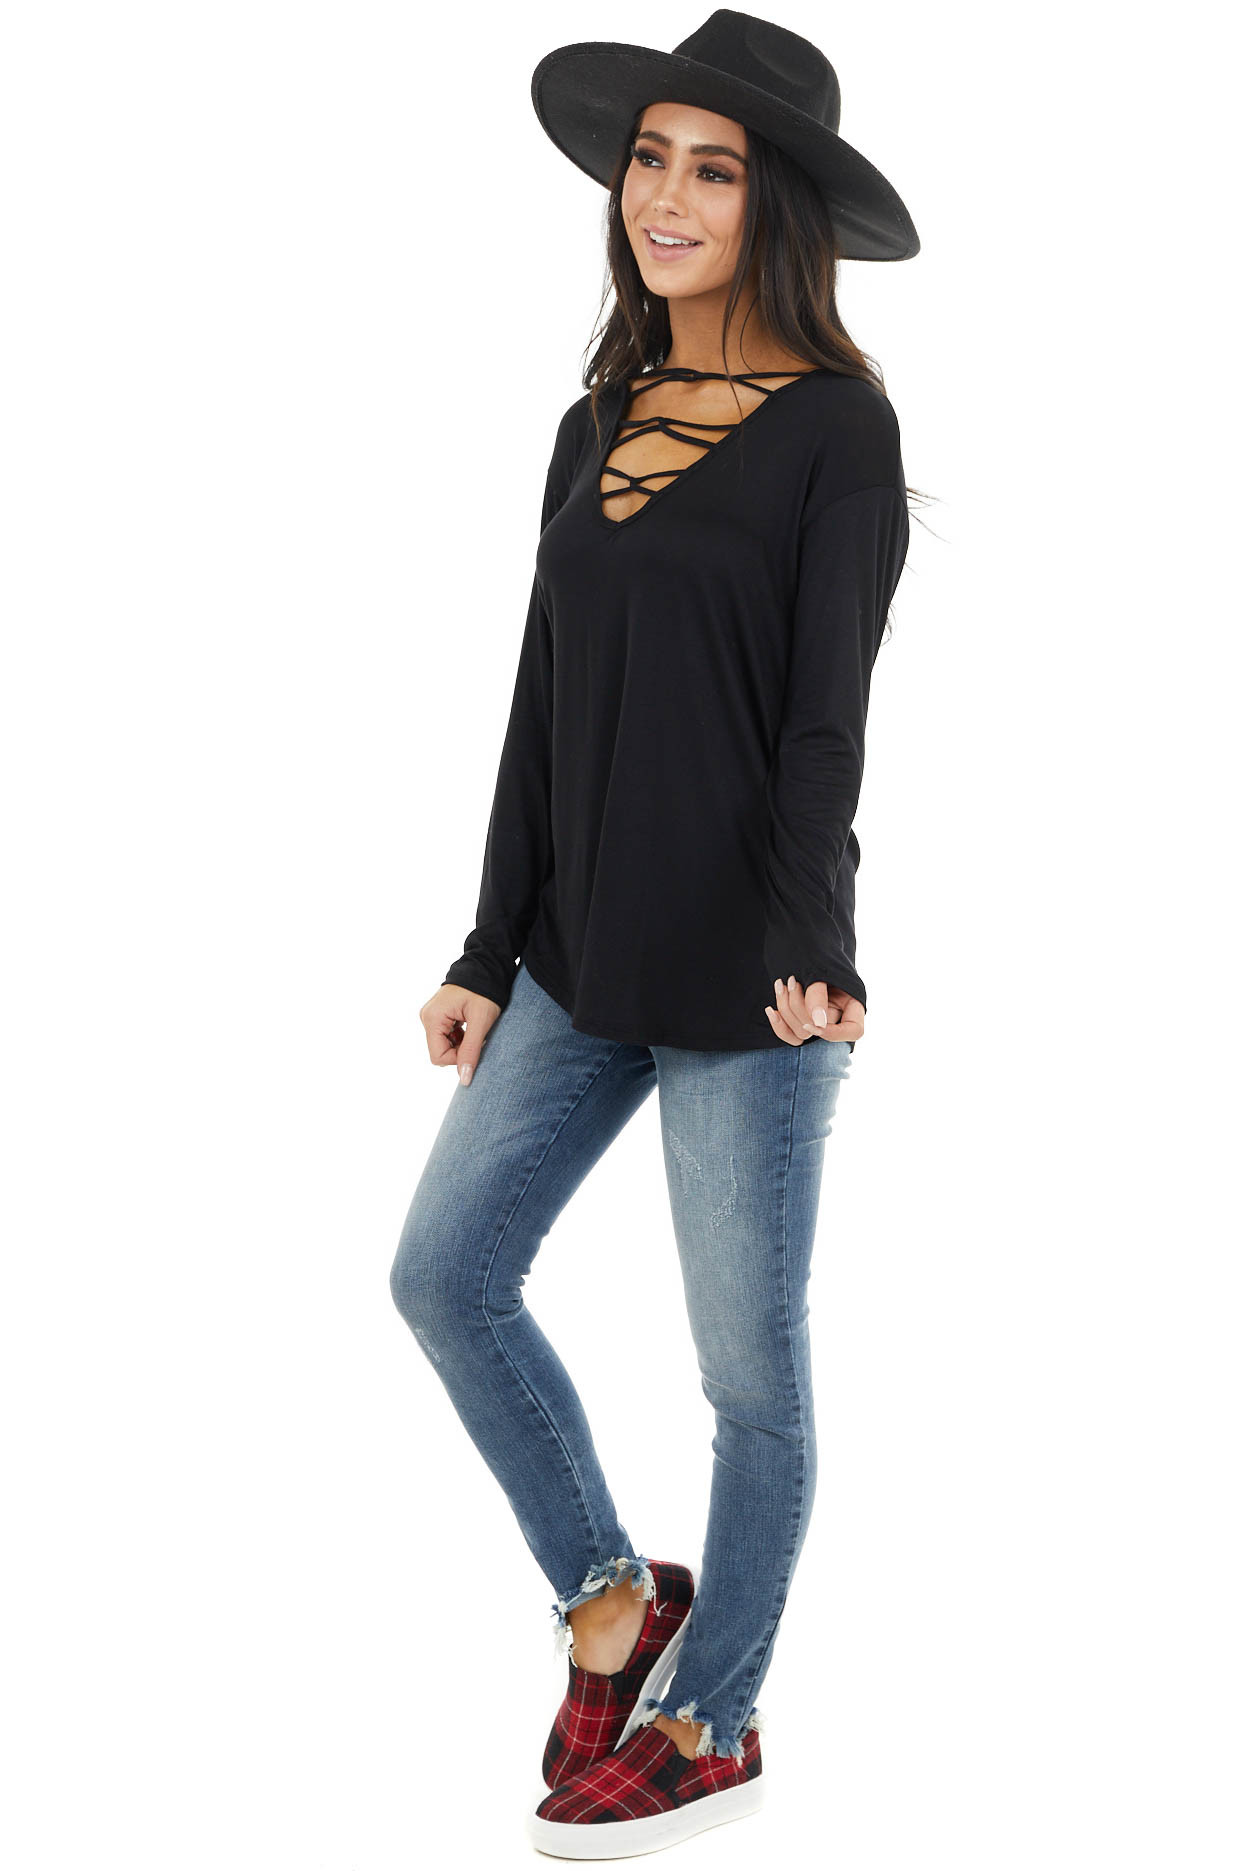 Black Caged V Neck Stretchy Knit Top with Long Sleeves